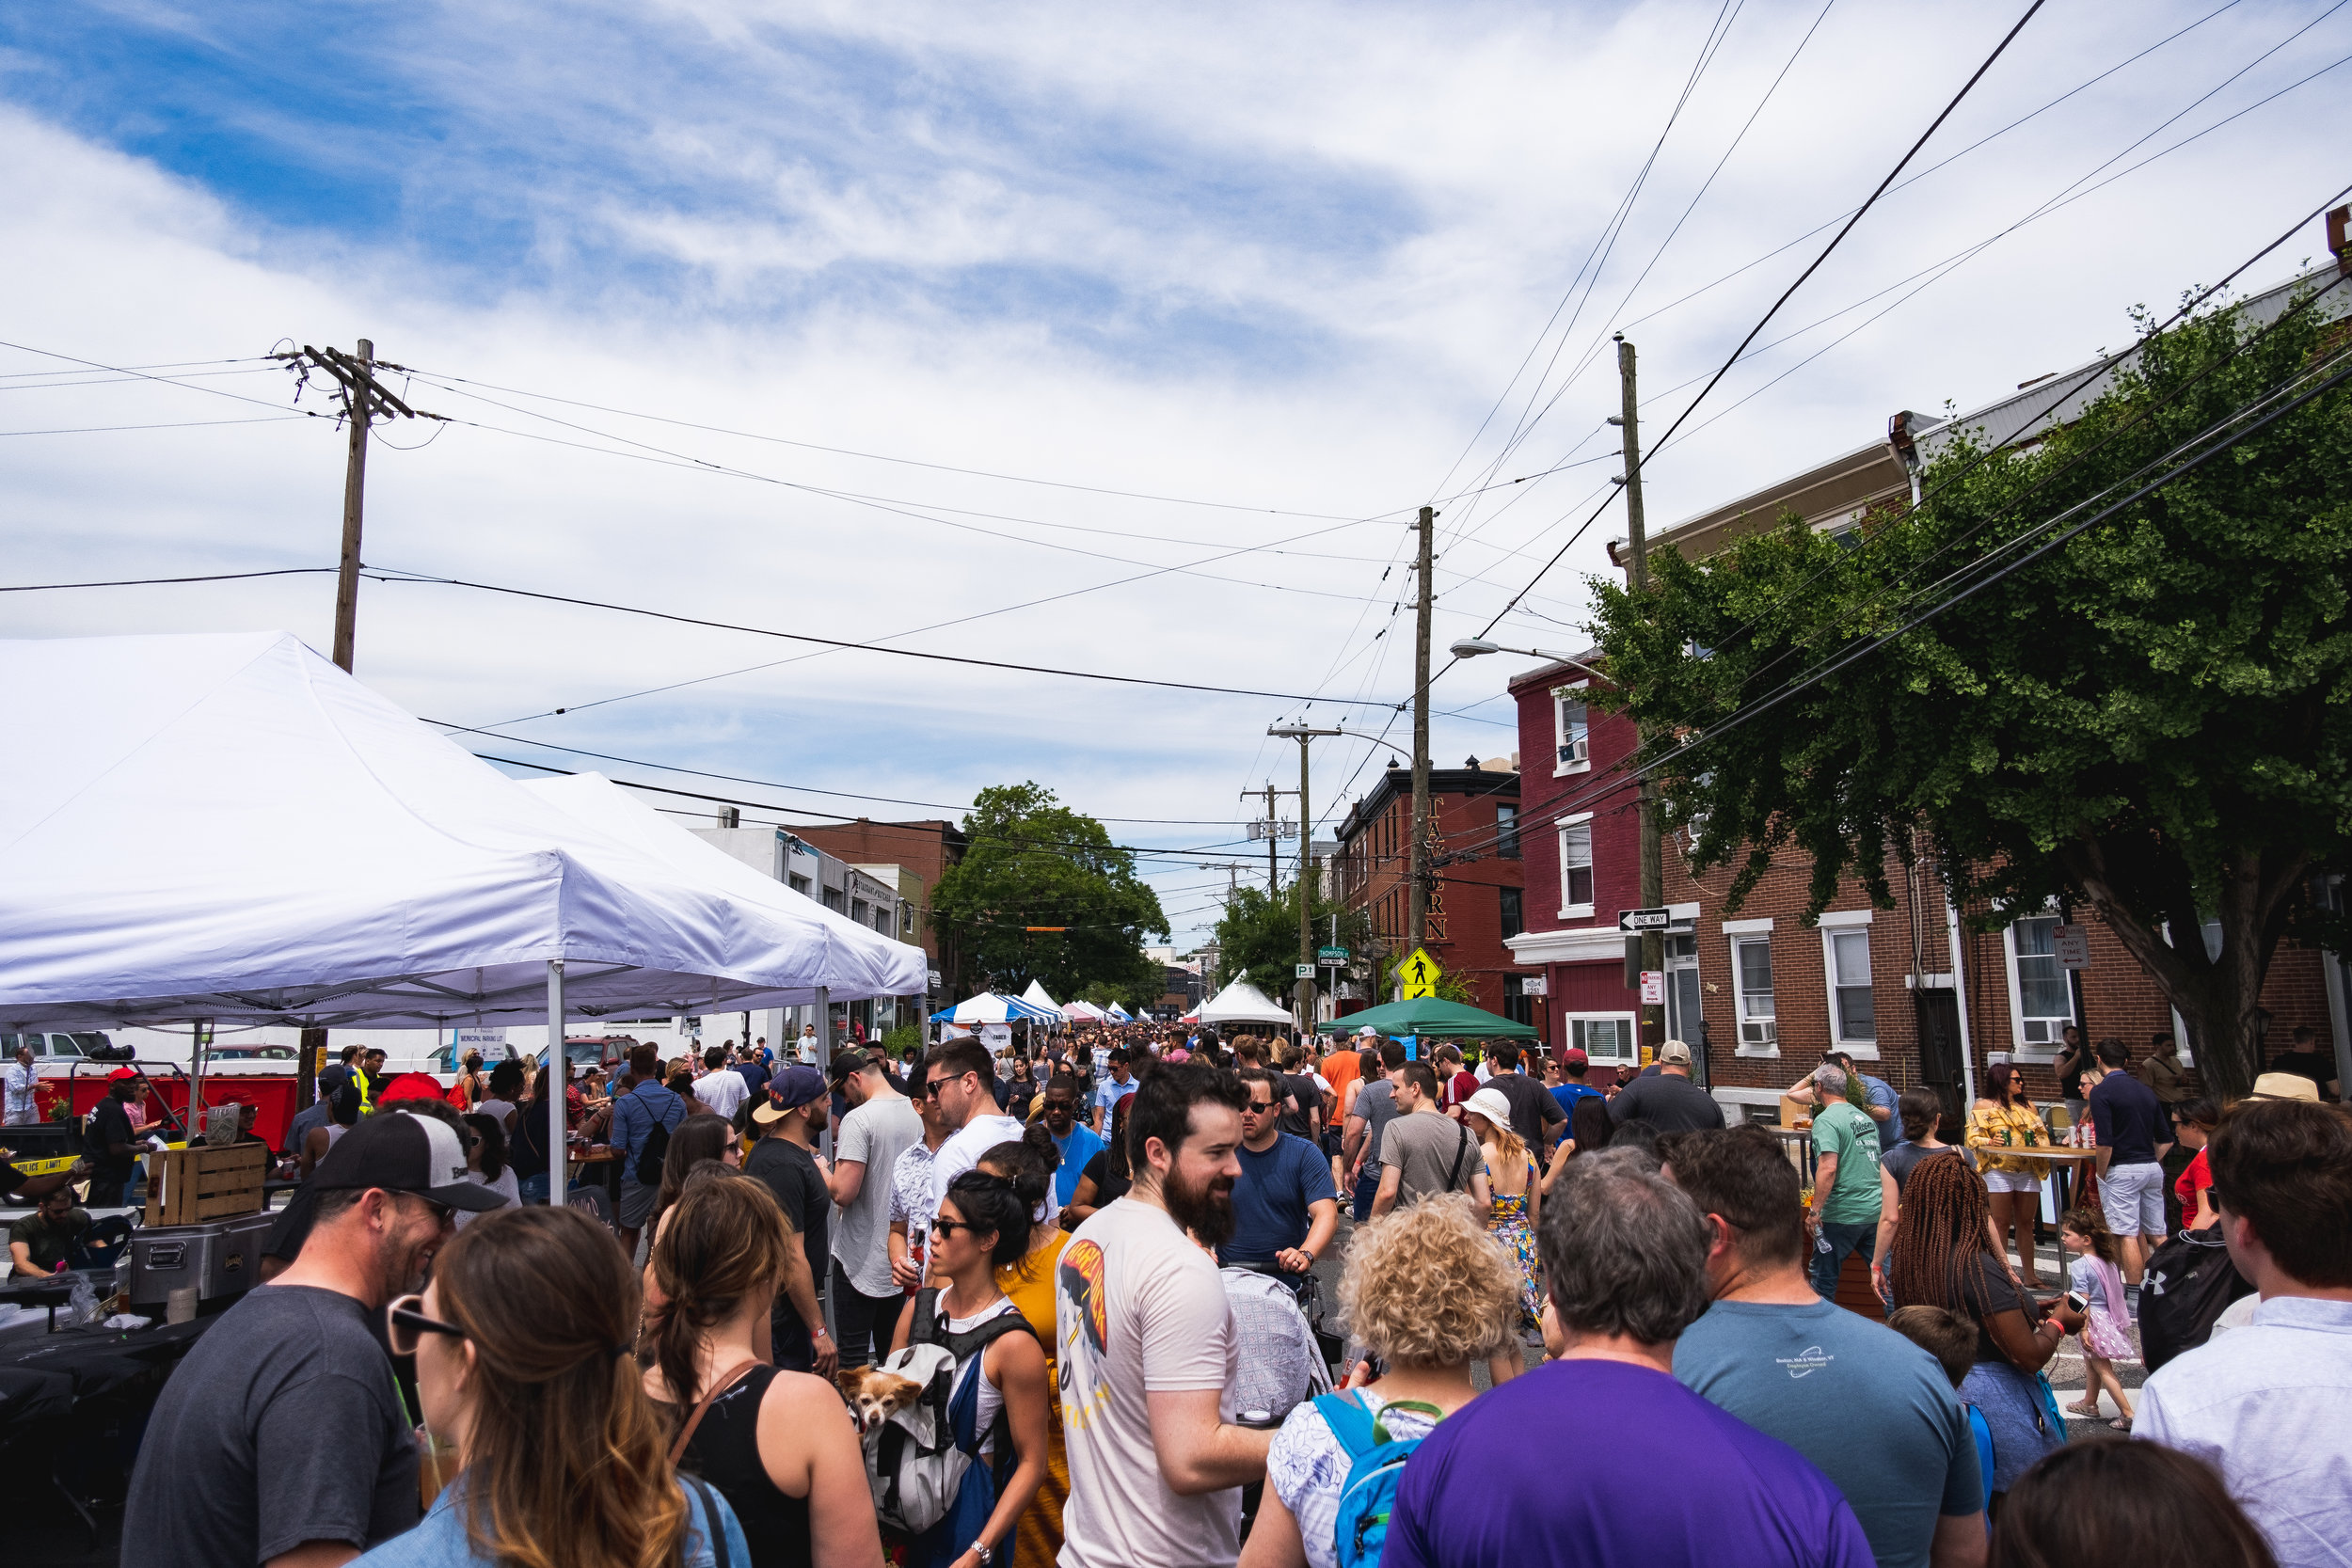 2019_PHILLY BEER WEEK_FISHTOWN FESTIVALE_EVENTS_THE PHILLY CHECKLIST-1.jpg